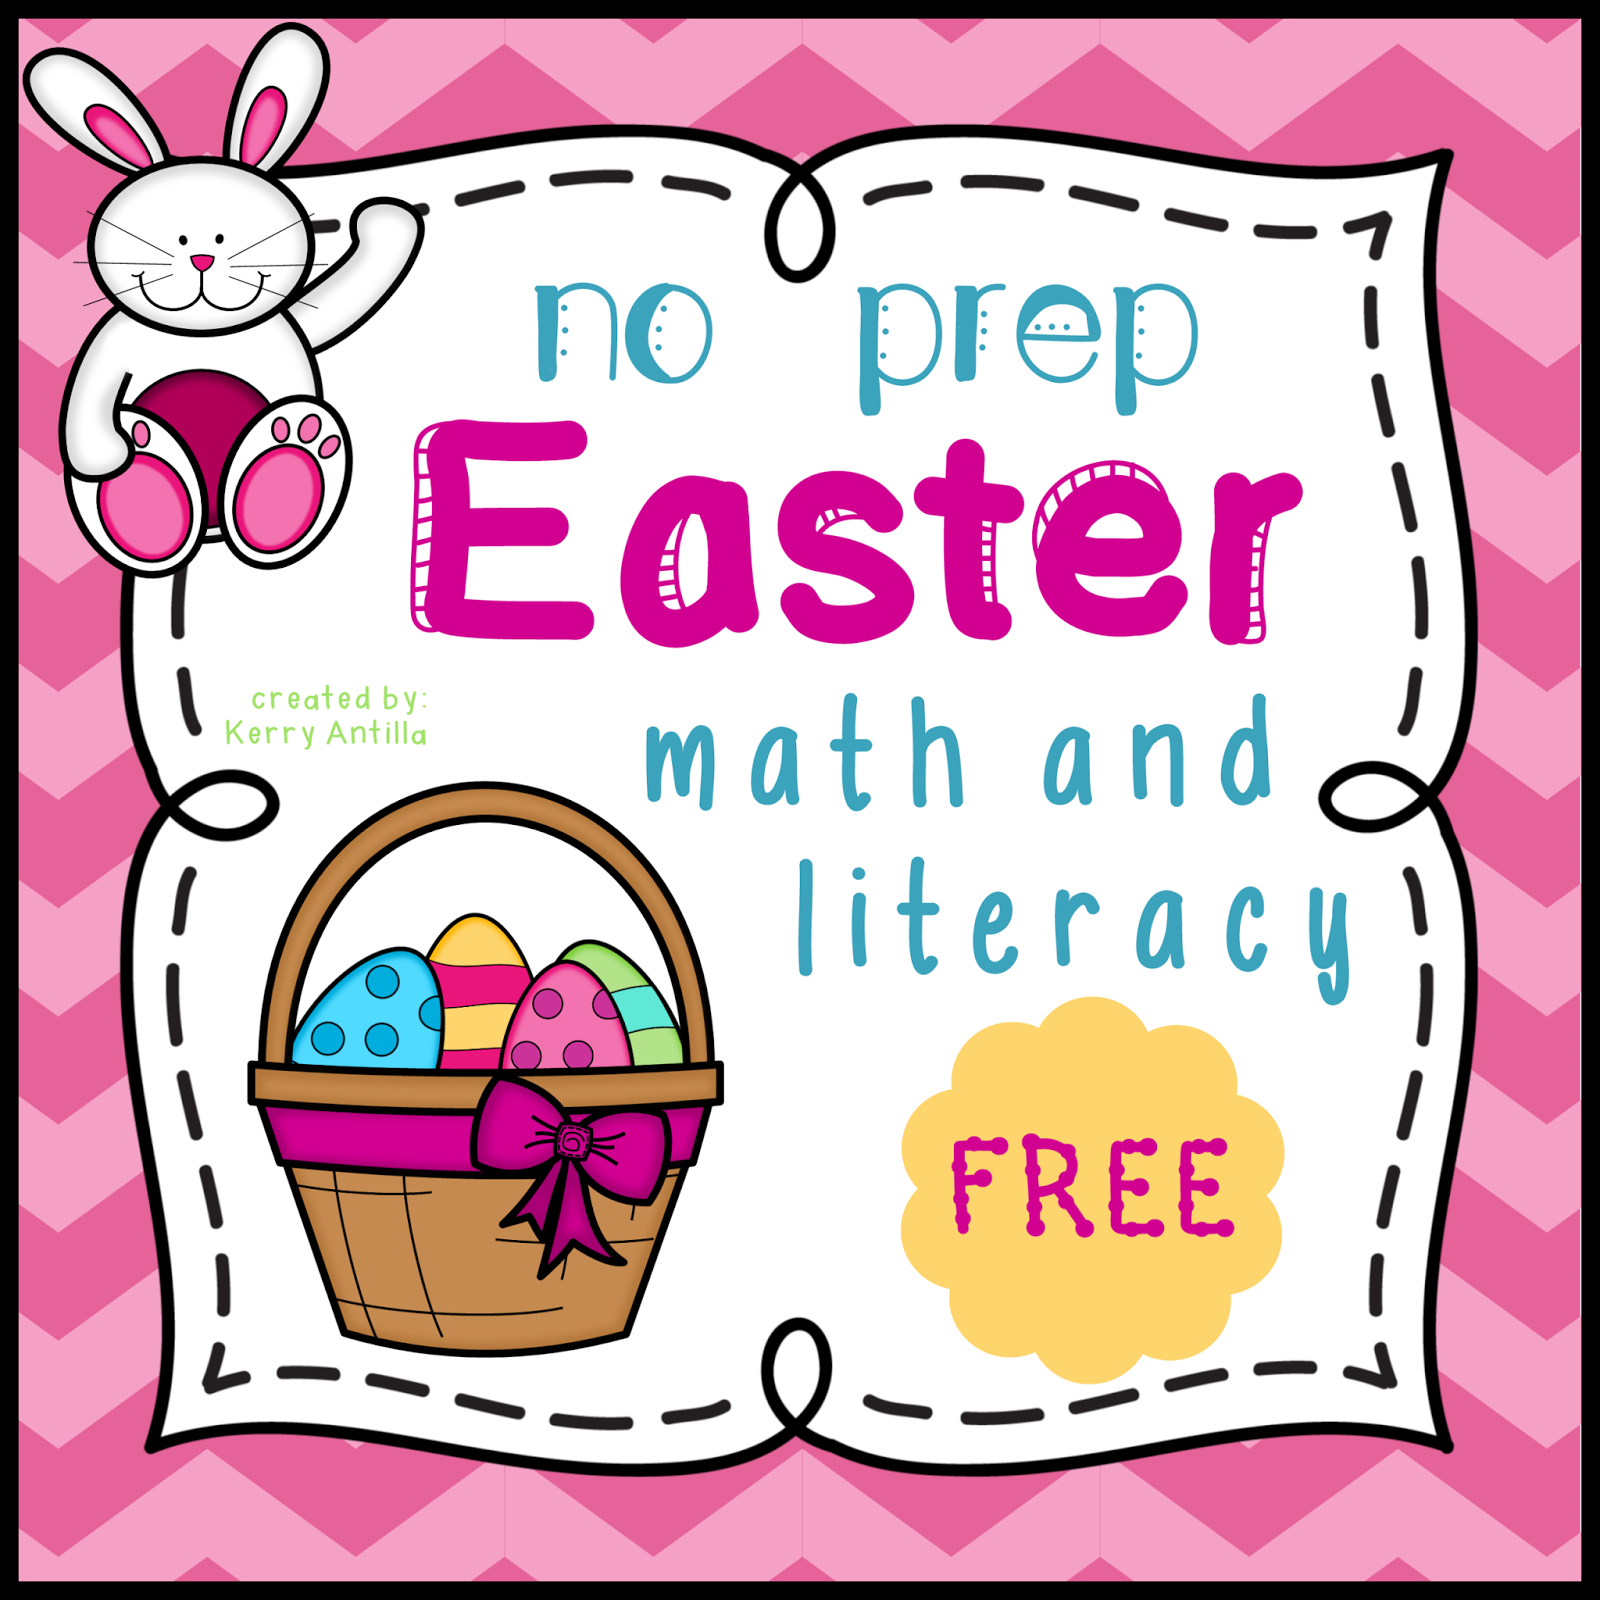 https://www.teacherspayteachers.com/Product/FREE-No-Prep-Easter-Math-and-Literacy-Pack-1207499